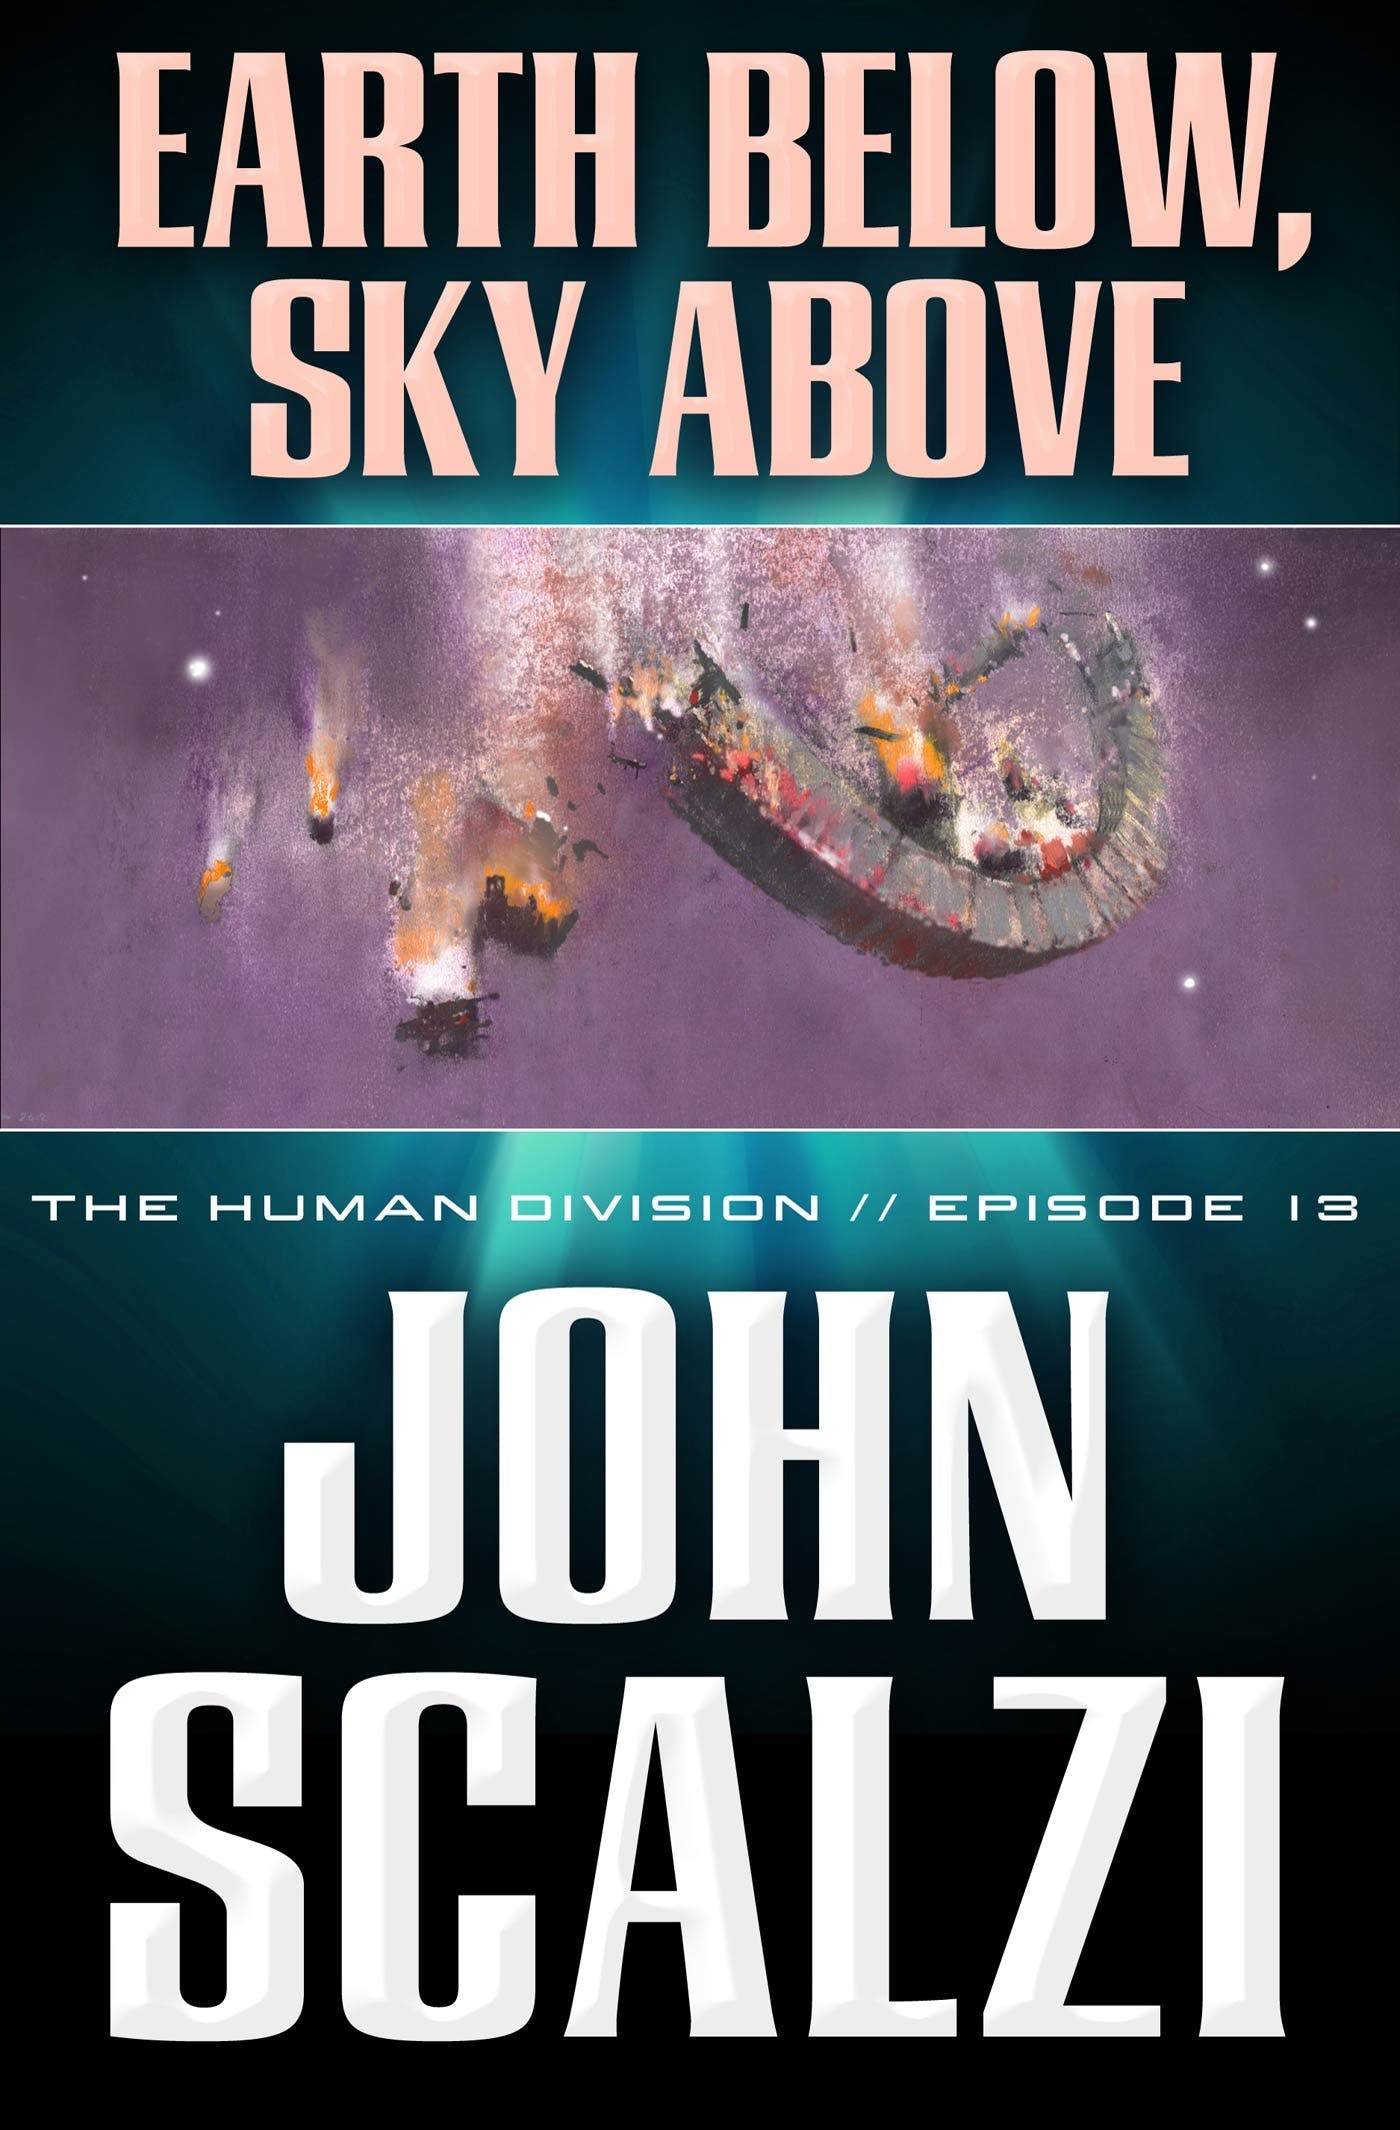 Image of The Human Division #13: Earth Below, Sky Above